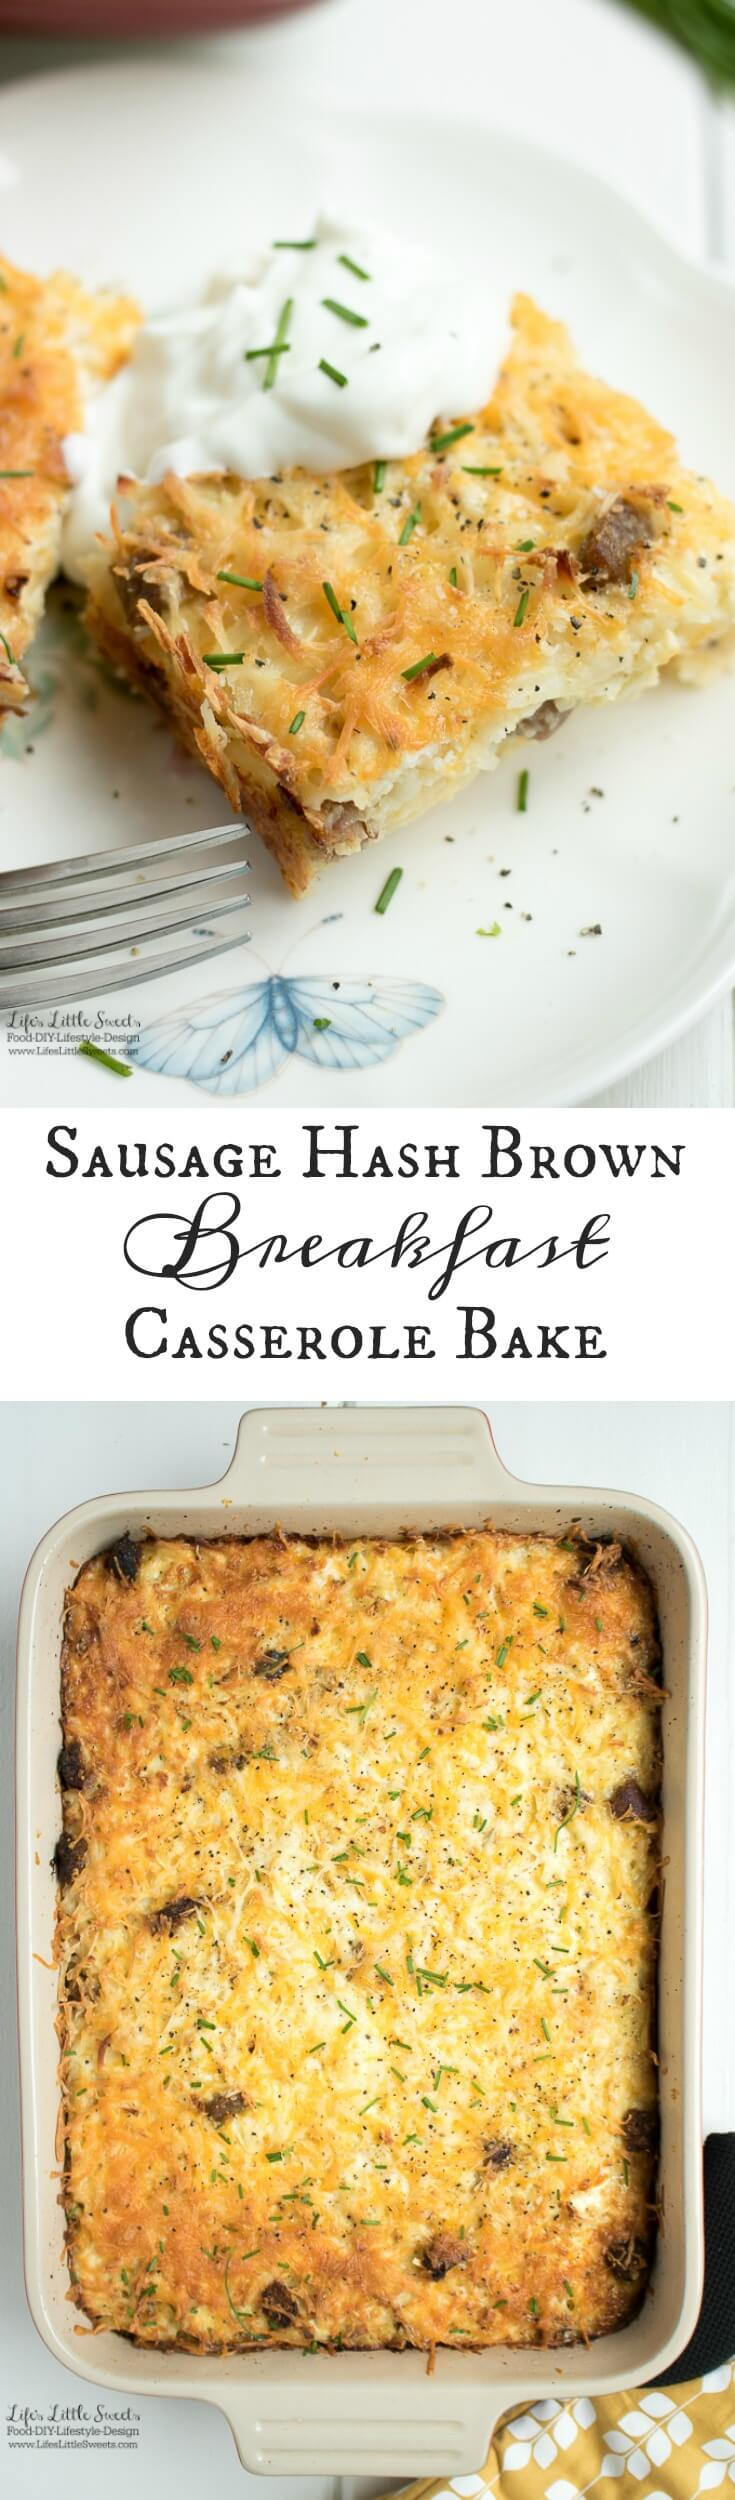 This savory and satisfying Sausage Hash Brown Breakfast Casserole Bake has sausage, hash browns, cheese and eggs. It's perfect for any breakfast or brunch gathering! (12 slices). www.lifeslittlesweets.com